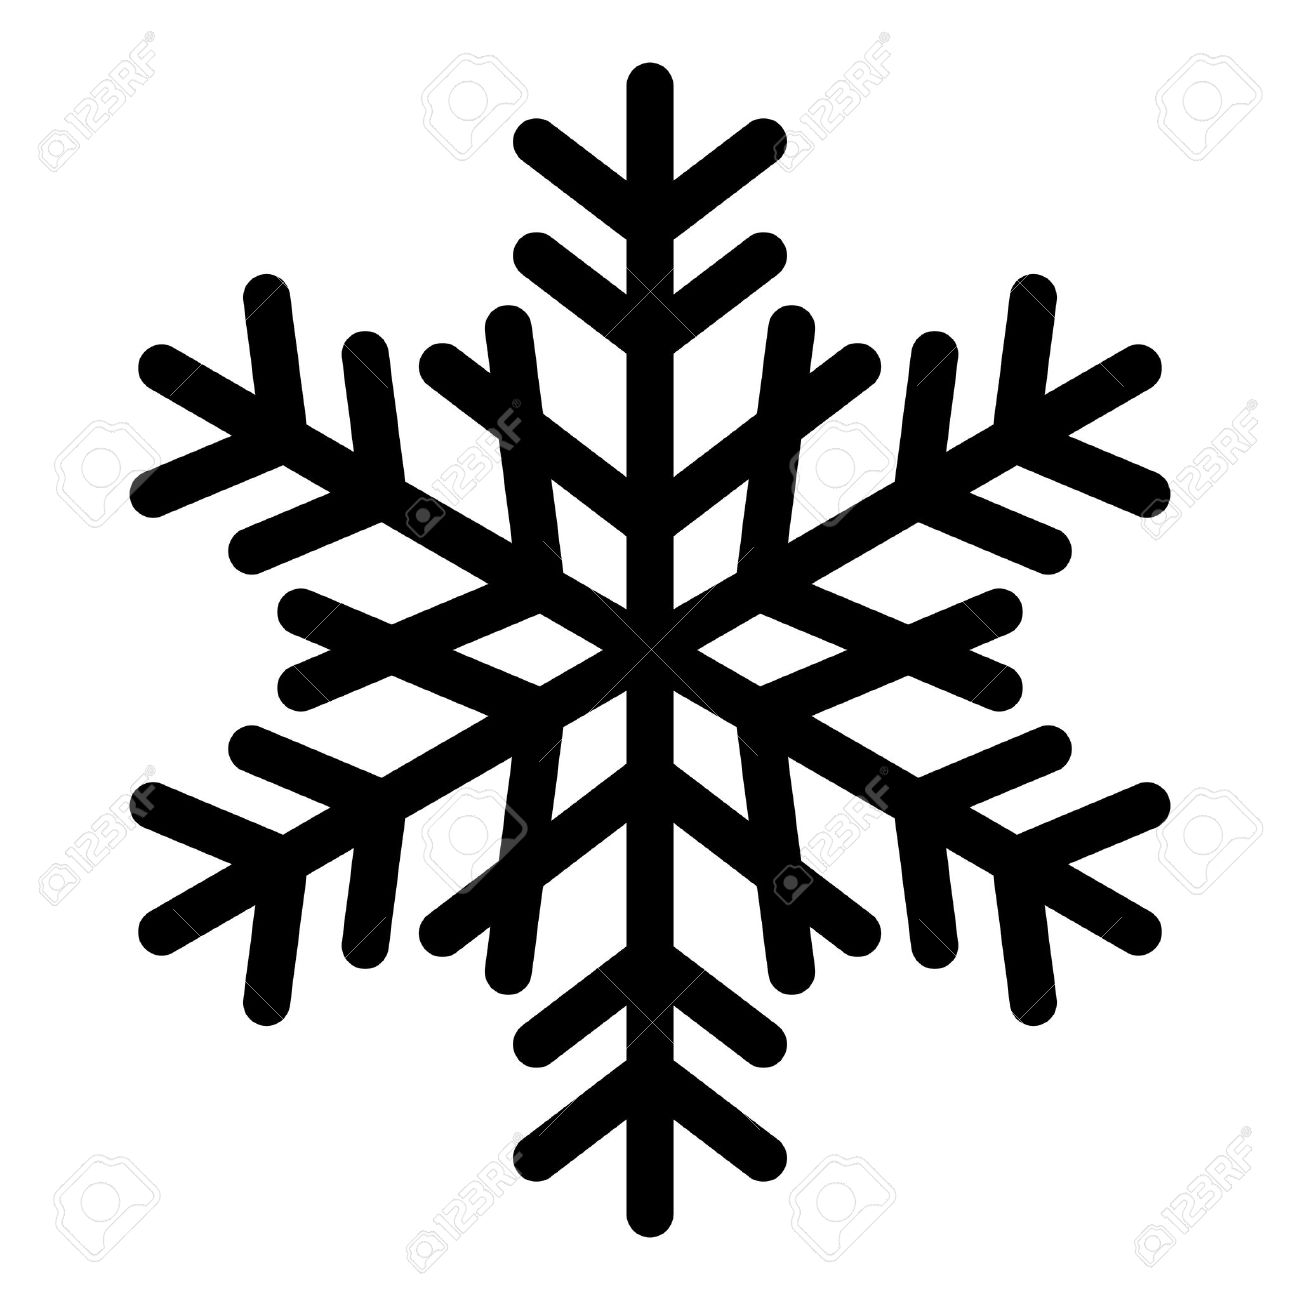 vector snowflake silhouette royalty free cliparts vectors and rh 123rf com vector snowflakes download vector snowflakes free